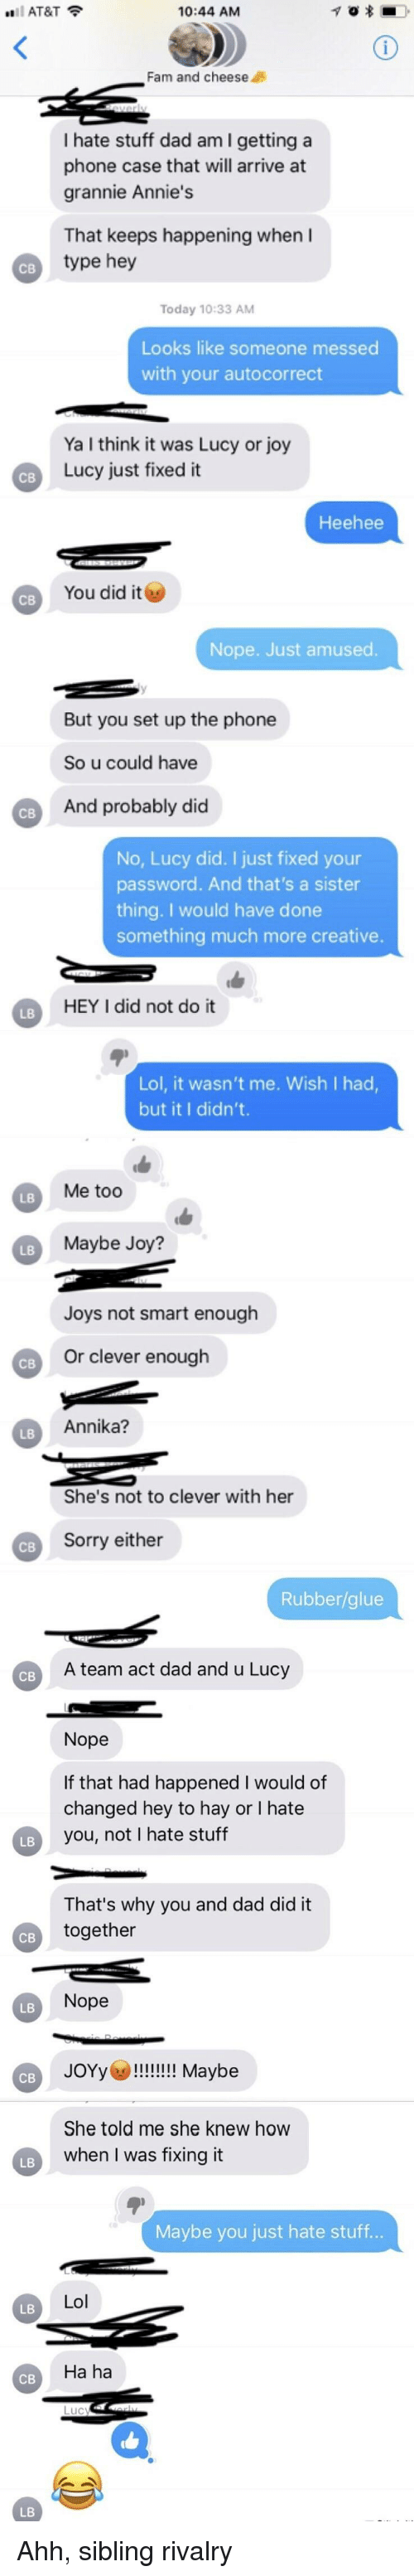 Autocorrect, Dad, and Fam: AT&T  10:44 AM  Fam and cheese  I hate stuff dad am I getting a  phone case that will arrive at  grannie Annie's  That keeps happening when I  type hey  Today 10:33 AM  Looks like someone messed  with your autocorrect  Ya I think it was Lucy or joy  Lucy just fixed it  Heehee  You did it ︶  св  Nope. Just amused  But you set up the phone  So u could have  And probably did  CB  No, Lucy did. I just fixed your  password. And that's a sister  thing. I would have done  something much more creative  HEY I did not do it  LB  Lol, it wasn't me. Wish I had  but it I didn't  Me too  LB  Maybe Joy?  LB  Joys not smart enough  Or clever enough  Annika?  LB  She's not to clever with her  Sorry either  Rubber/glue  св  A team act dad and u Lucy  Nope  If that had happened I would of  changed hey to hay or I hate  you, not I hate stuff  LB  That's why you and dad did it  together  св  Nope  LB  JOYy!!! Maybe  св  She told me she knew how  when I was fixing it  LB  Maybe you just hate stuff  Lol  LB  Ha ha  СВ  LB